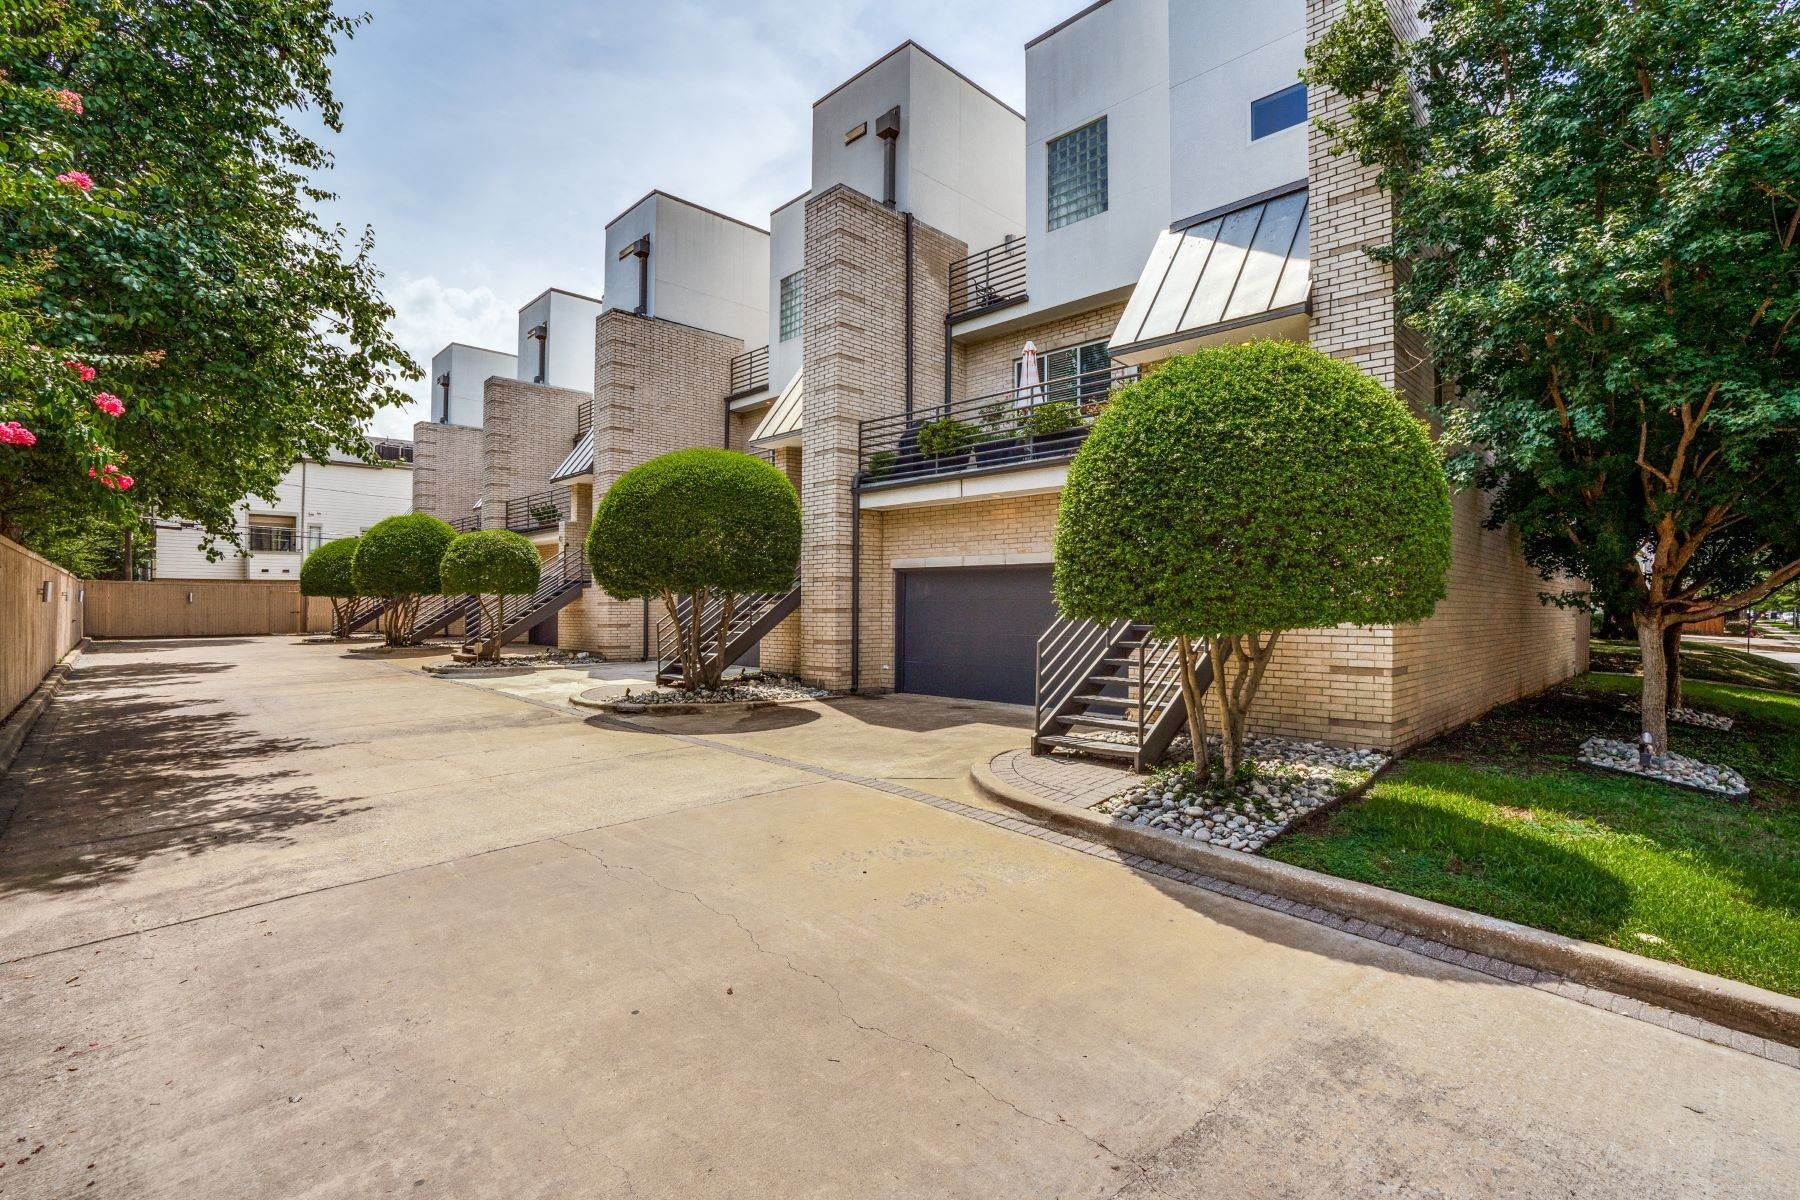 4. townhouses for Sale at Clean, Contemporary, Open Concept 3-Bedroom Townhouse 3925 Gilbert Avenue, #C Dallas, Texas 75219 United States